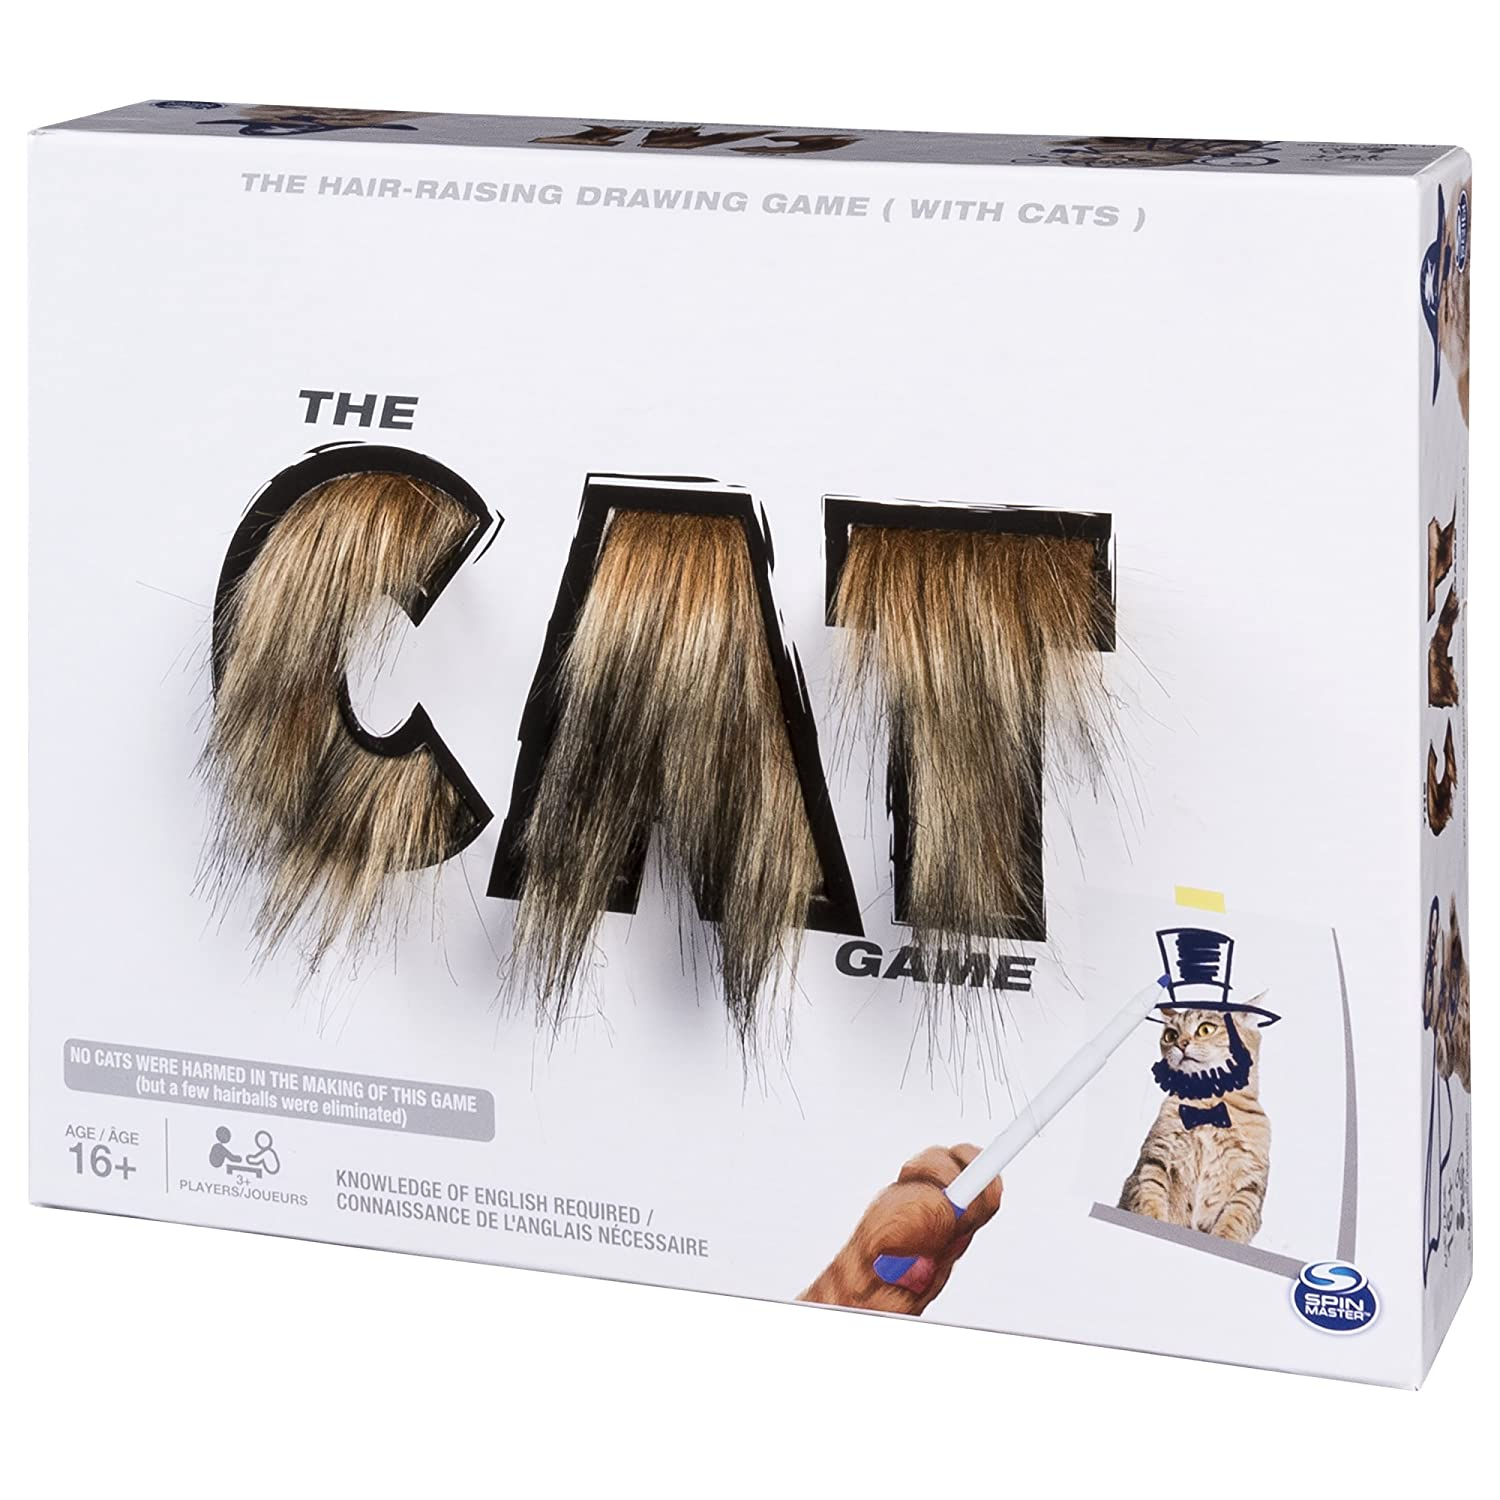 The Cat Game Drawing Game for Teens and Adults